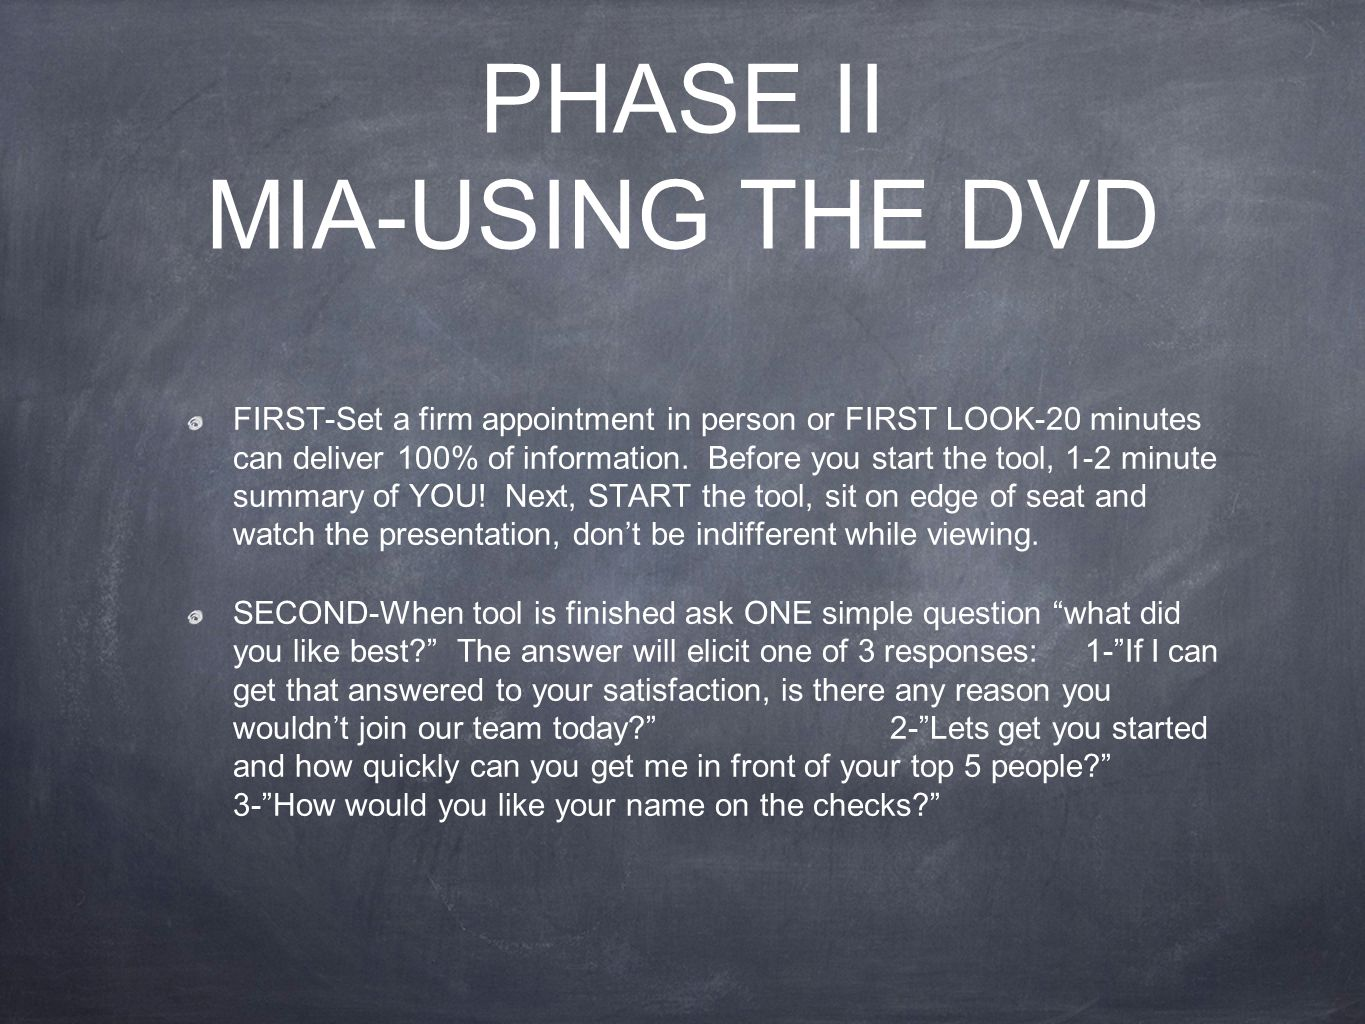 PHASE II MIA-USING THE DVD FIRST-Set a firm appointment in person or FIRST LOOK-20 minutes can deliver 100% of information.